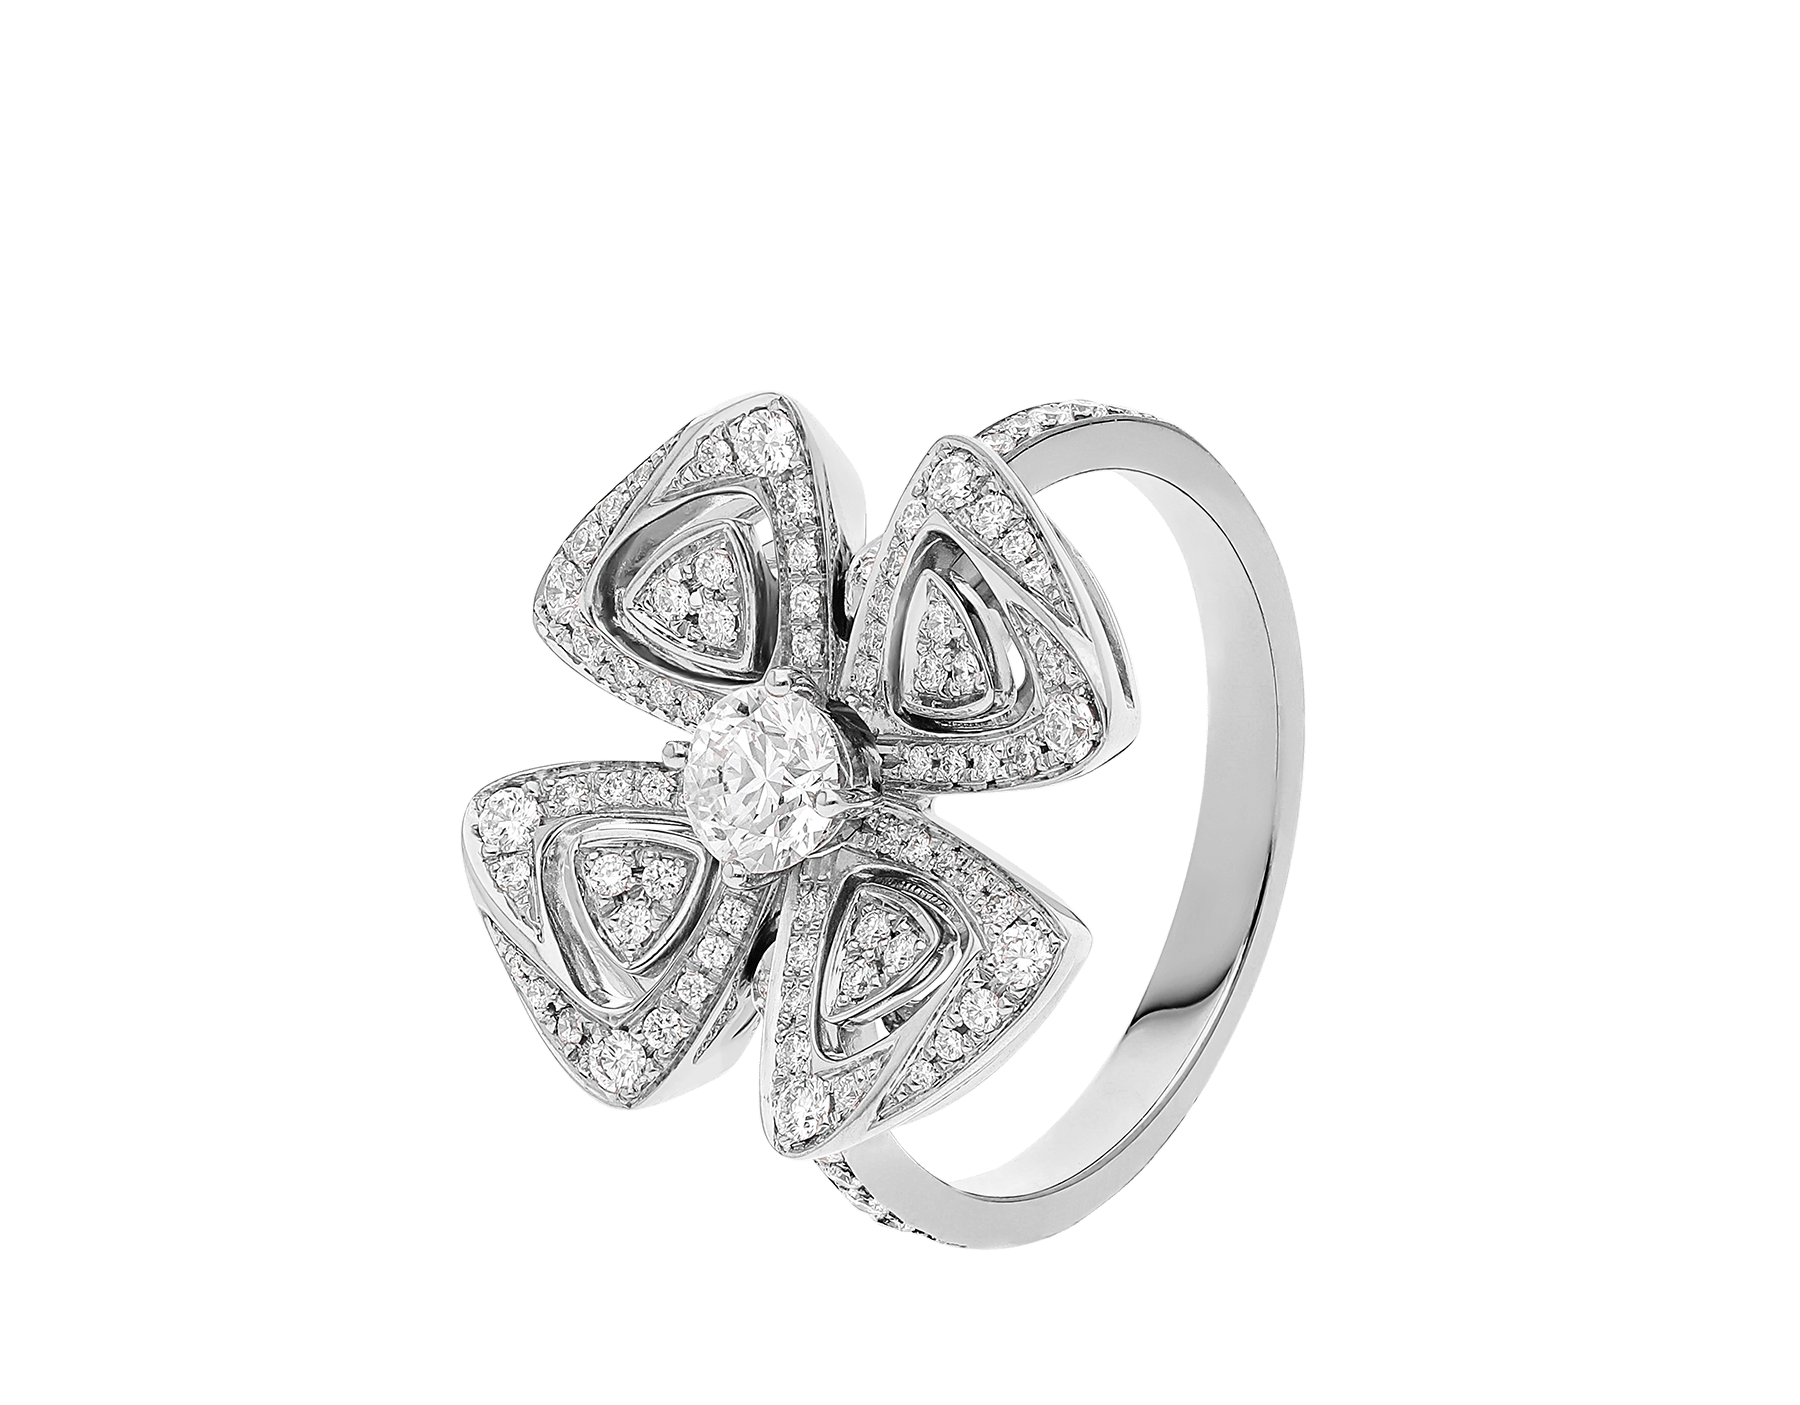 Fiorever 18 kt white gold ring set with a central diamond and pavé diamonds. AN858168 image 1